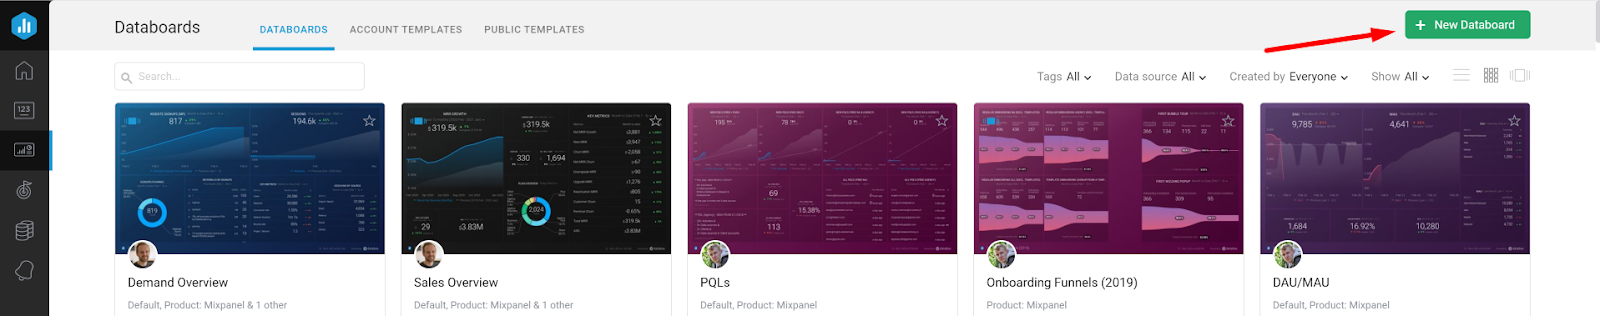 databoards page